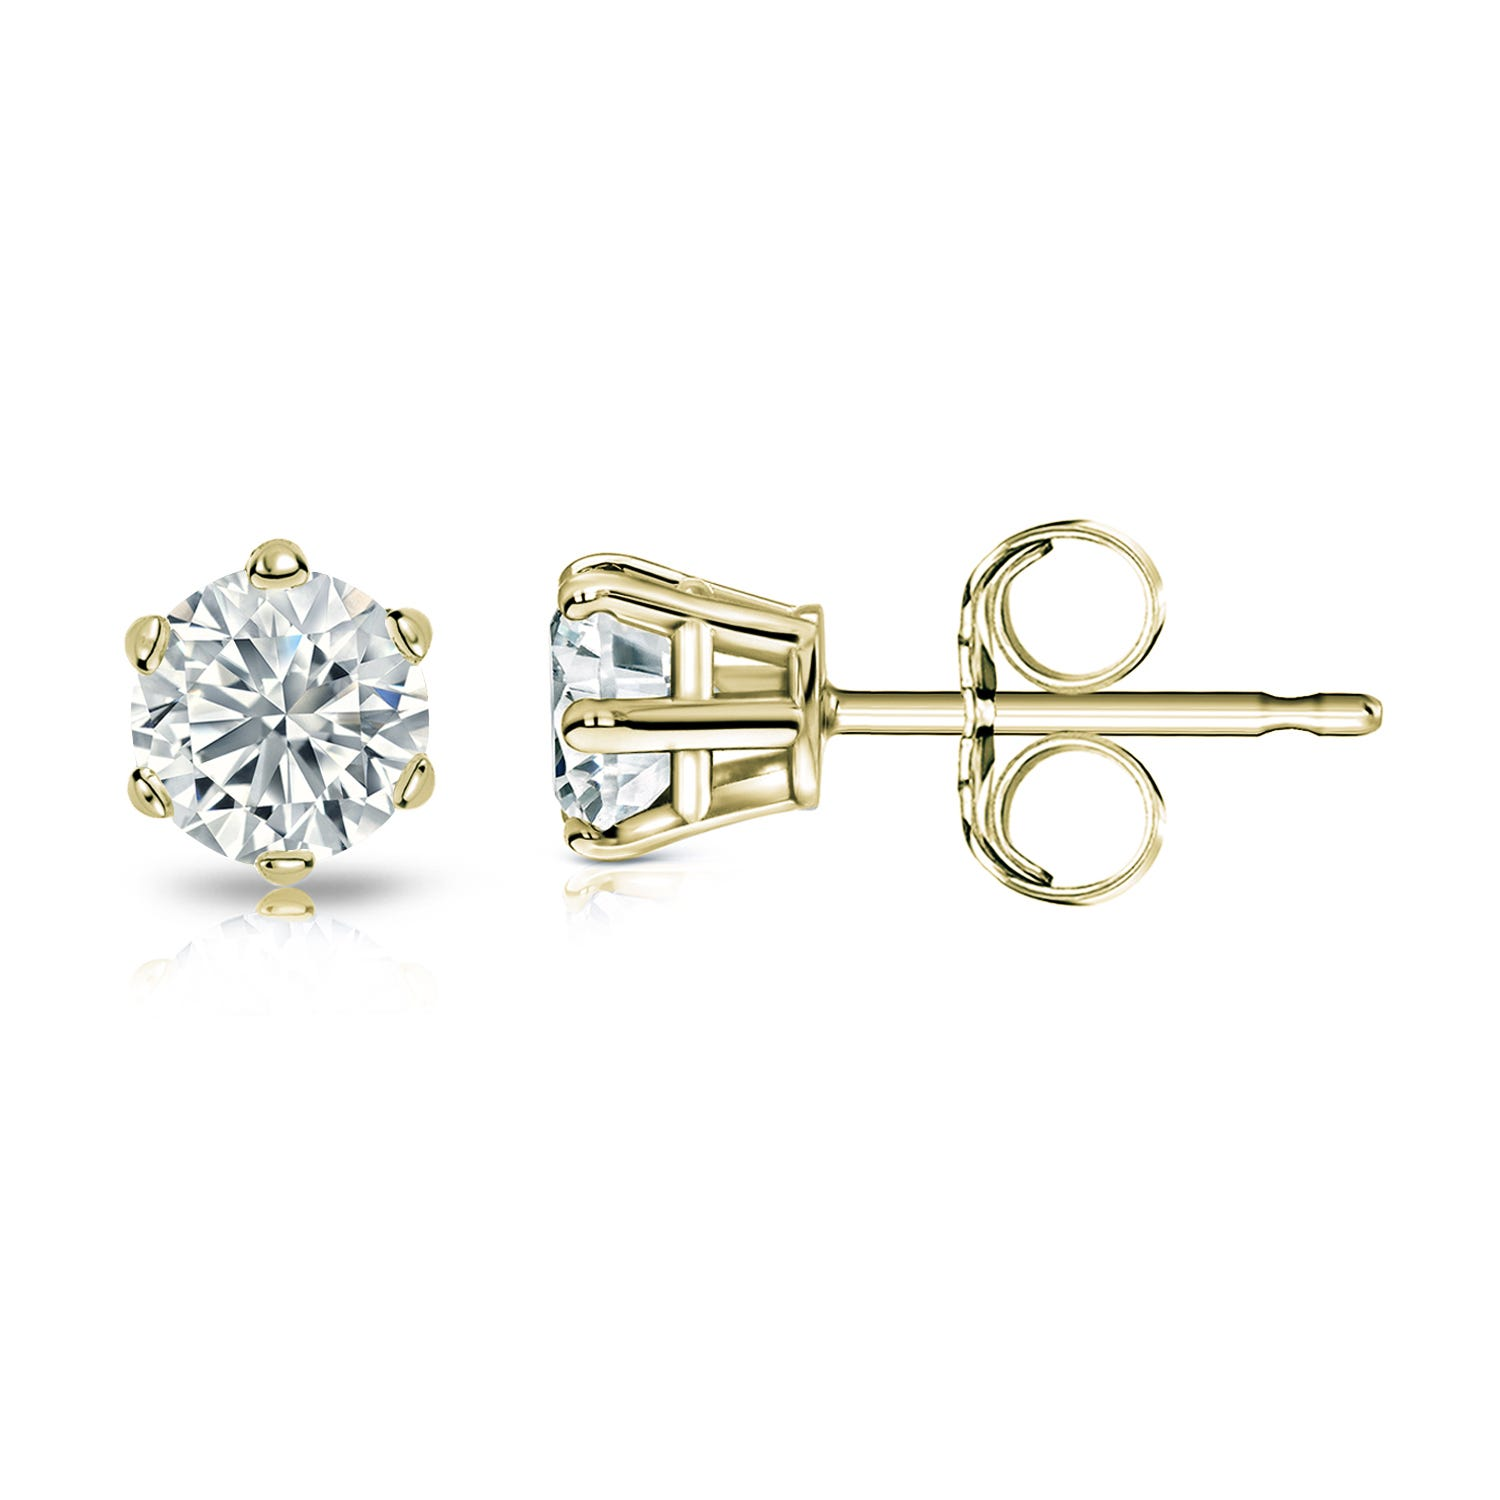 Round Diamond 1/2ctw. (IJ-SI1) Solitaire Stud 6-Prong Earrings in 14K Yellow Gold